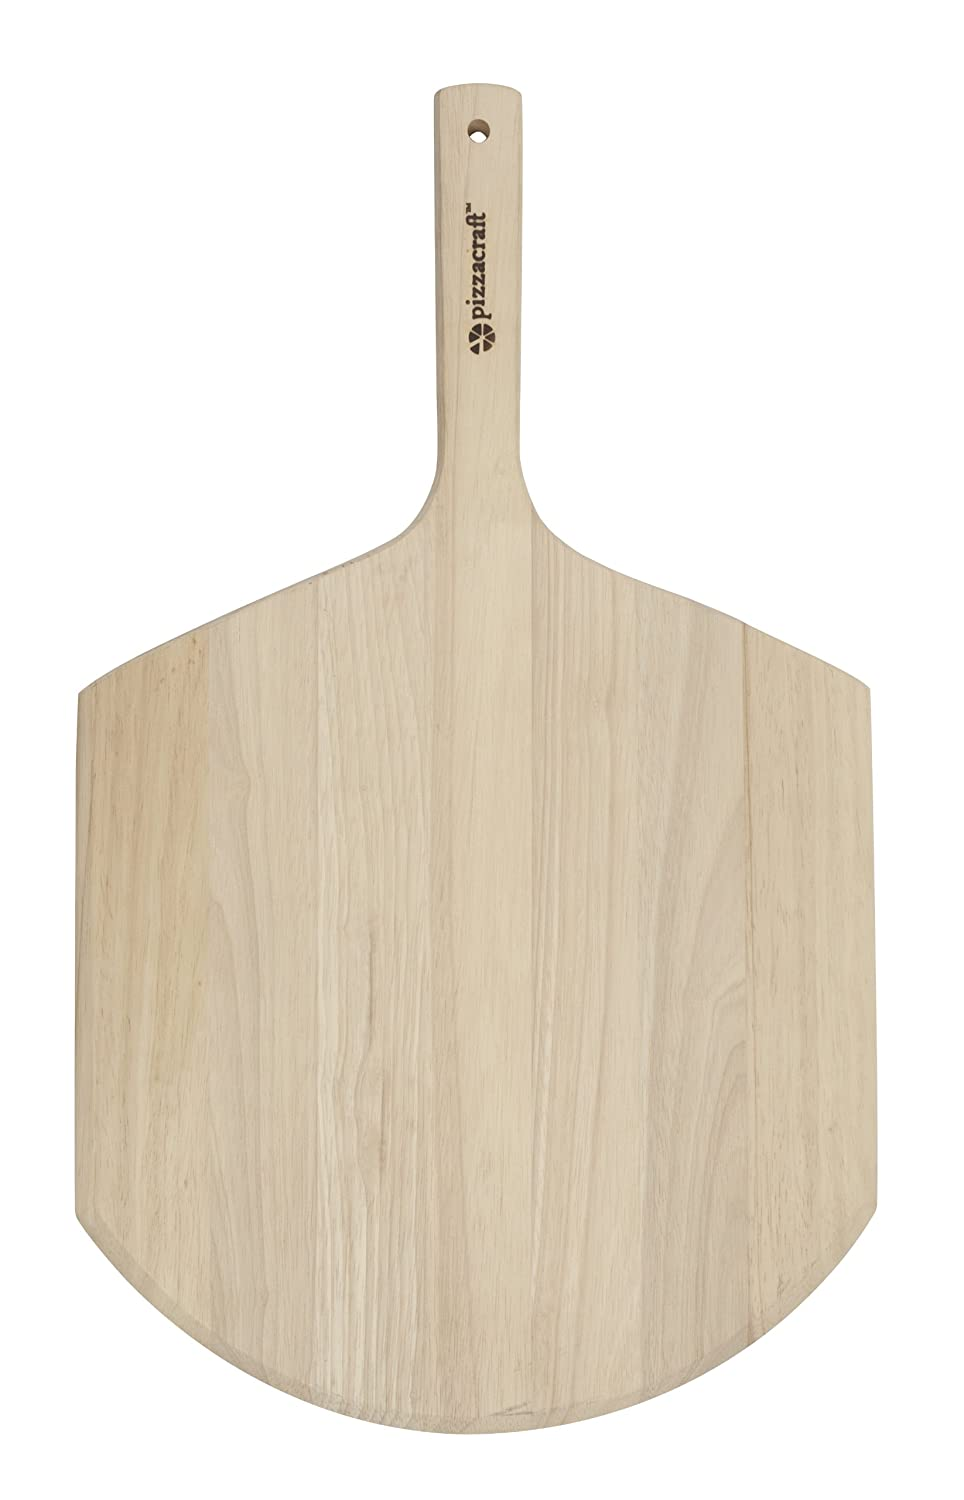 Pizzacraft Pizza Peel With Folding Wood Handle For Easy Storage (Stainless Steel) - PC0200 Charcoal Companion